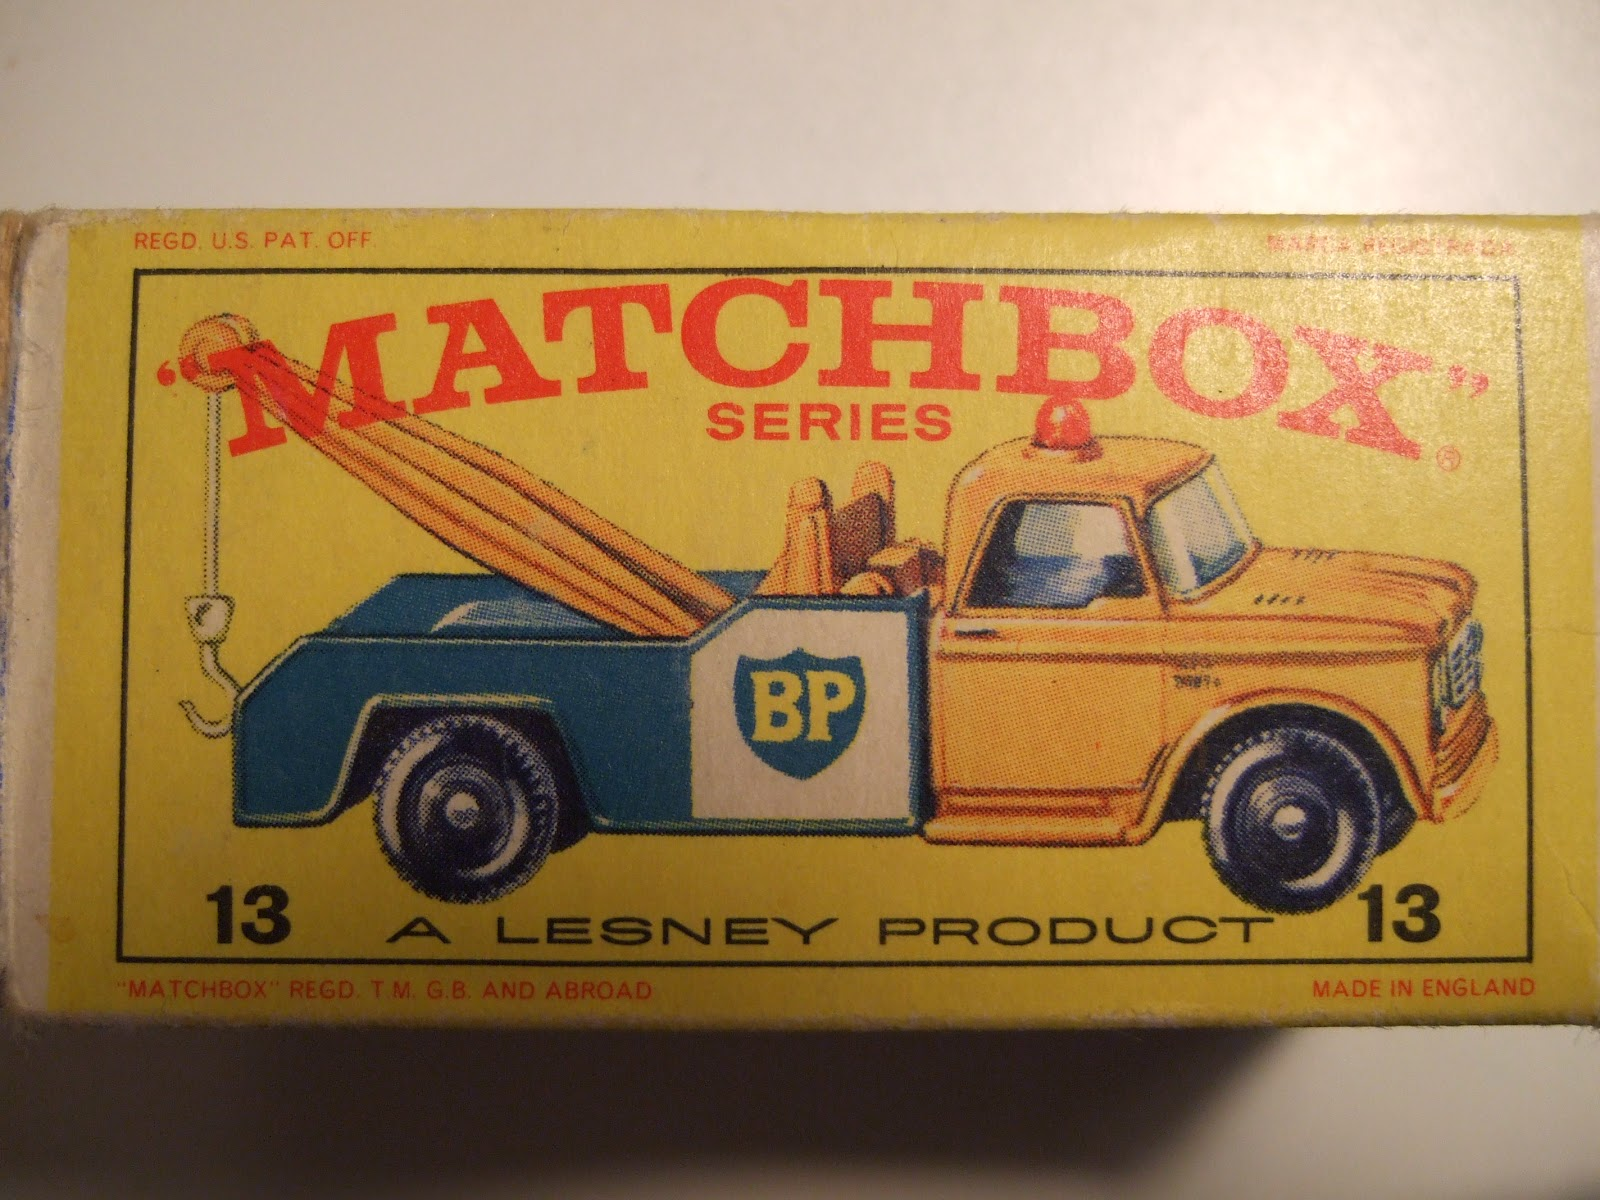 Matchbox Series 13d Dodge Bp Wrecker C1965 1970 Kens Toy Shelf 1954 Tow Truck